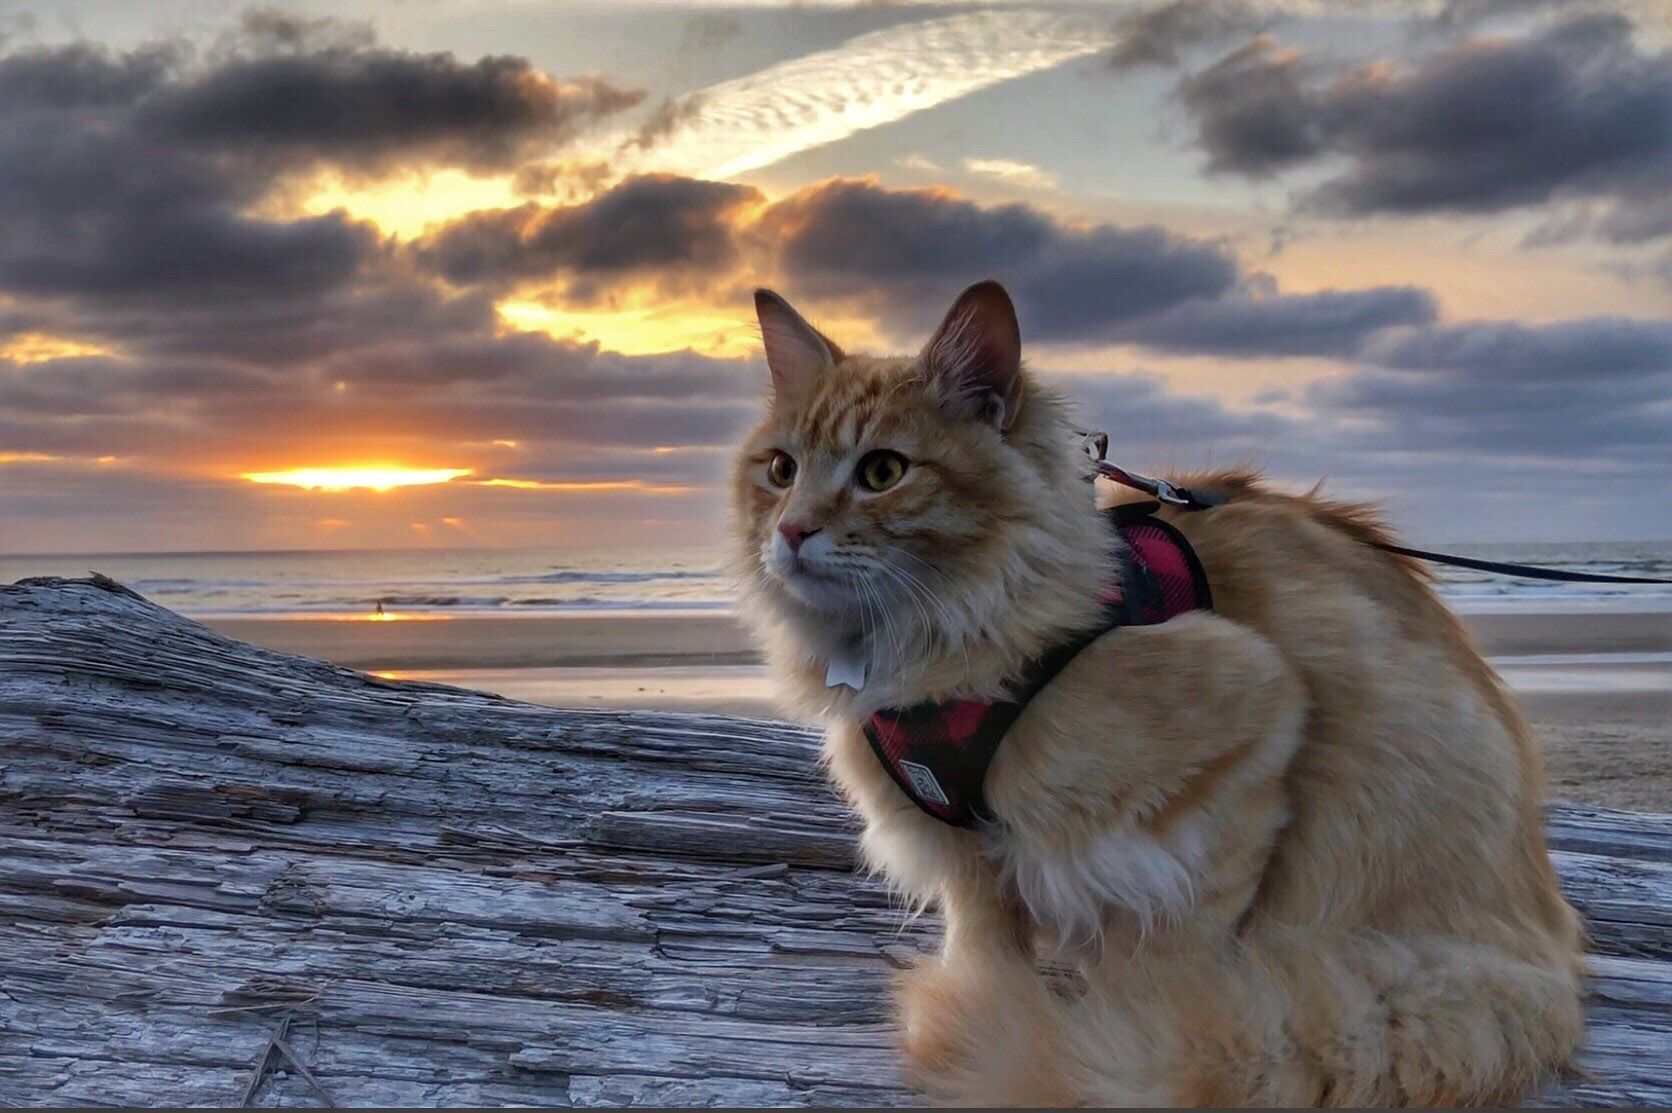 adventure cat on beach at sunset